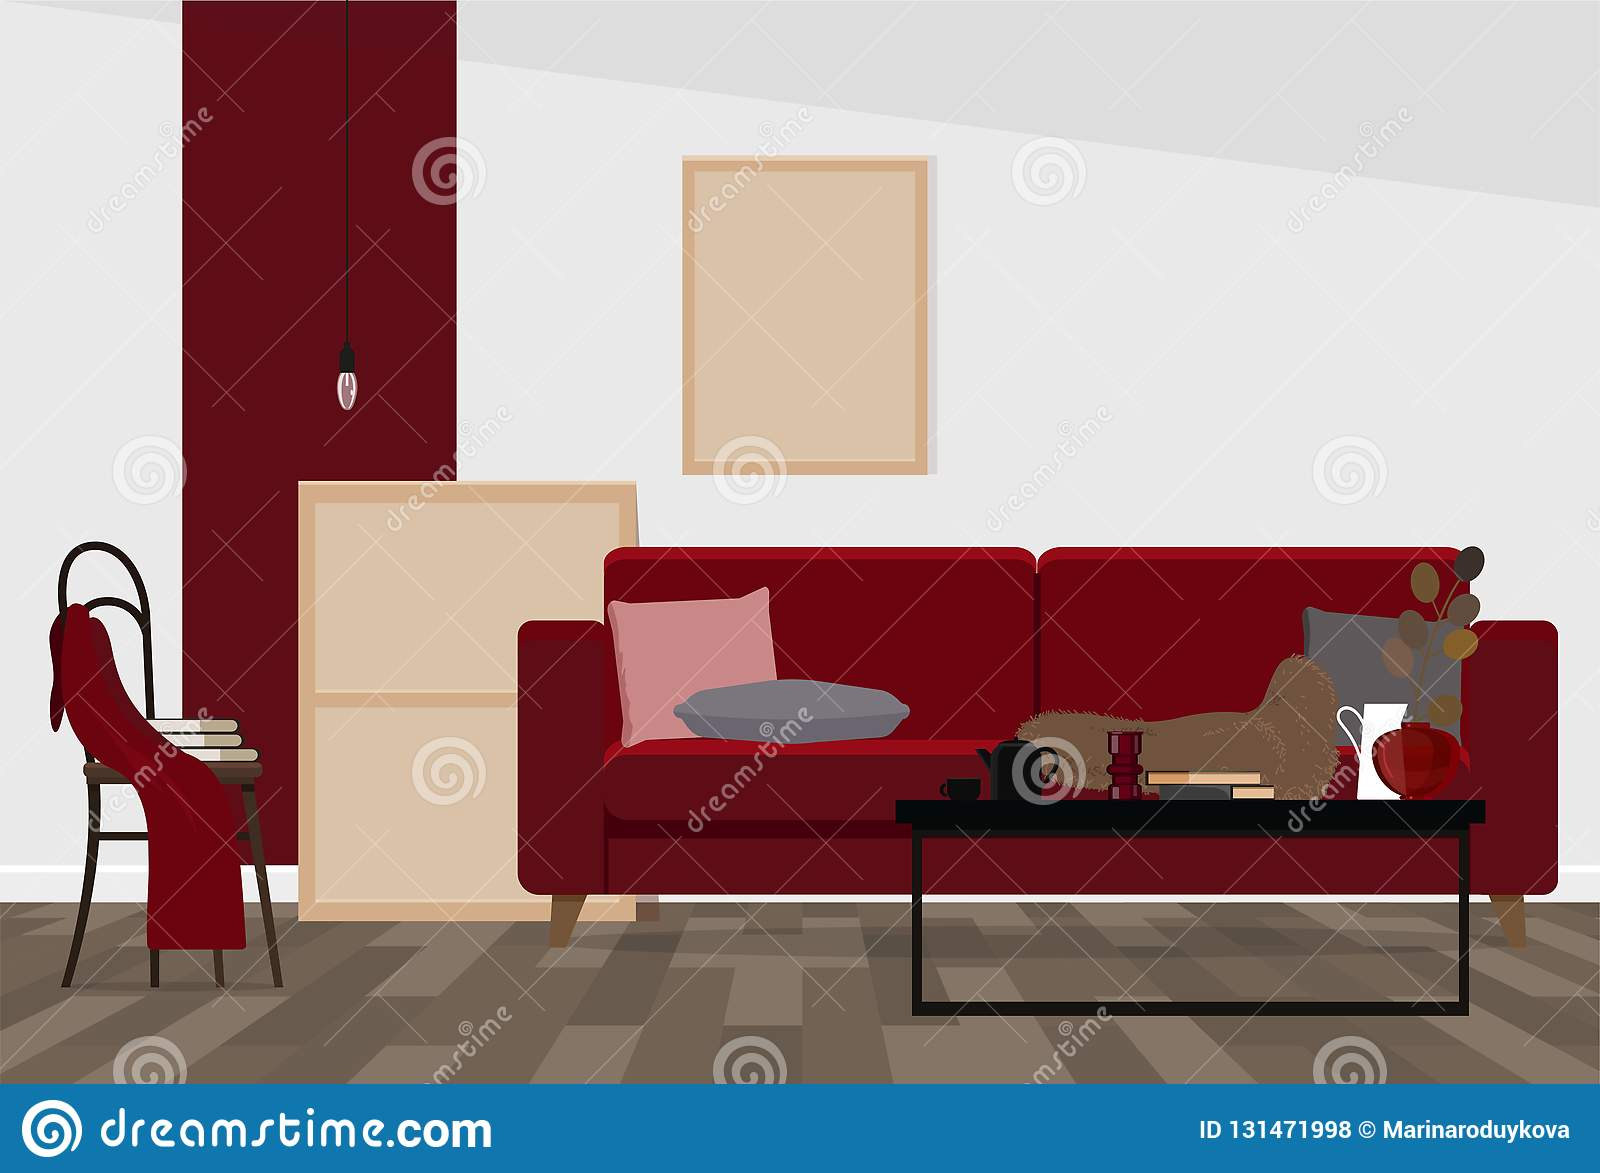 Modern Interior Design Of A Living Room Or Office Space In An